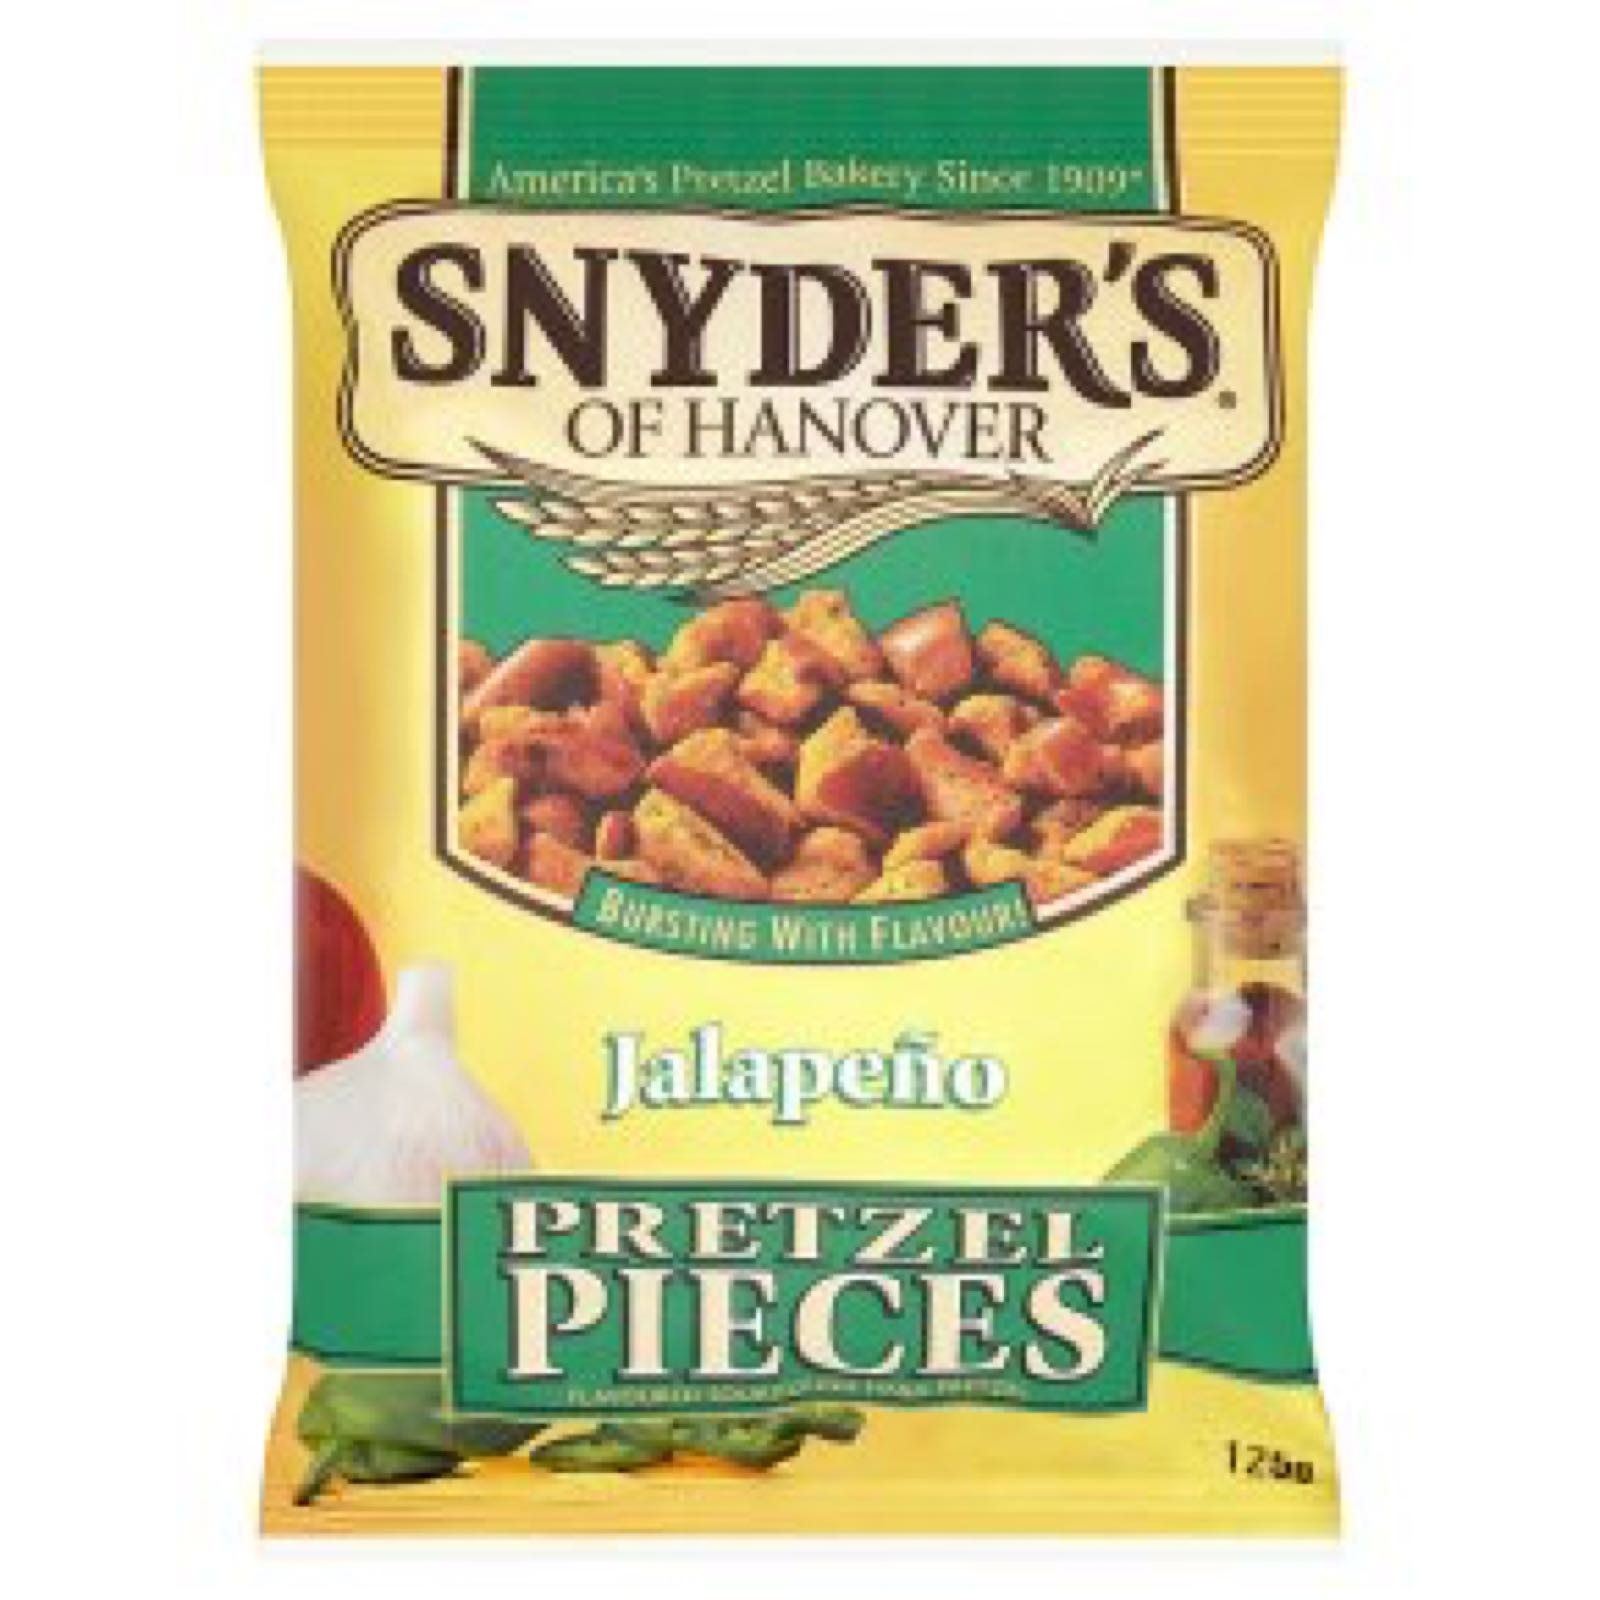 Snyders Pretzel Pieces